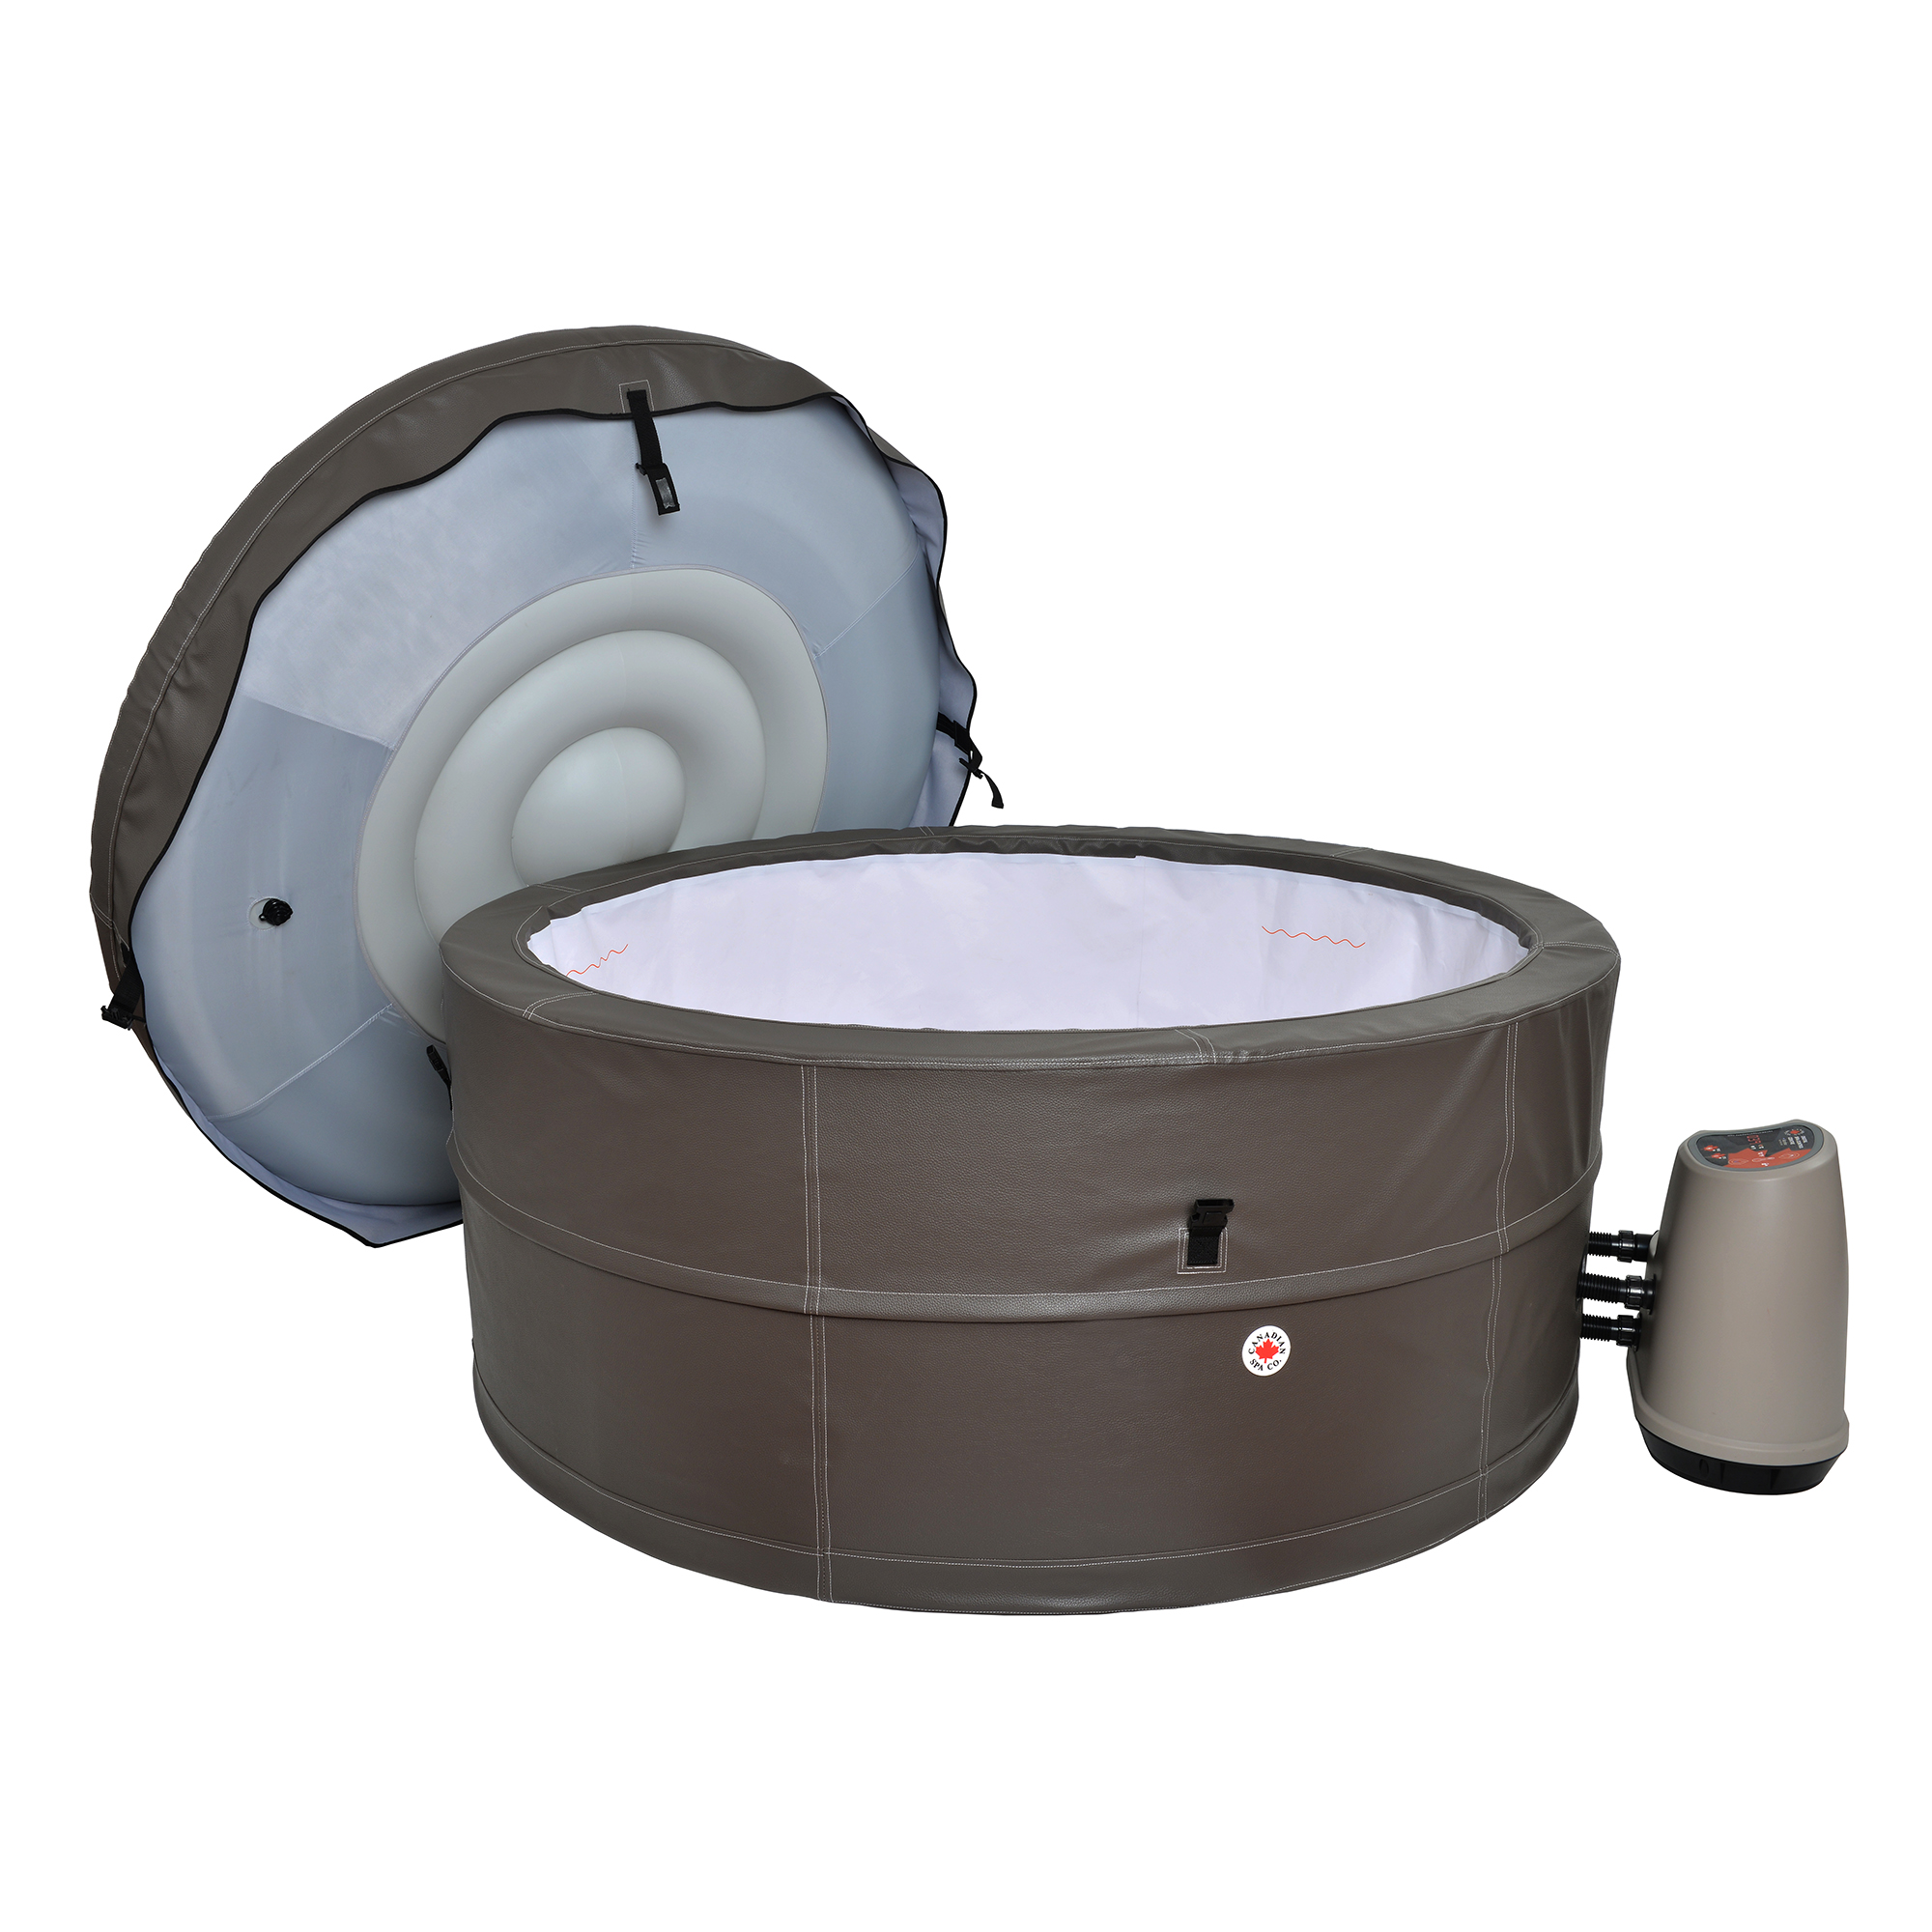 Swift Current V2 5-Person Portable Spa by Canadian Spa Company